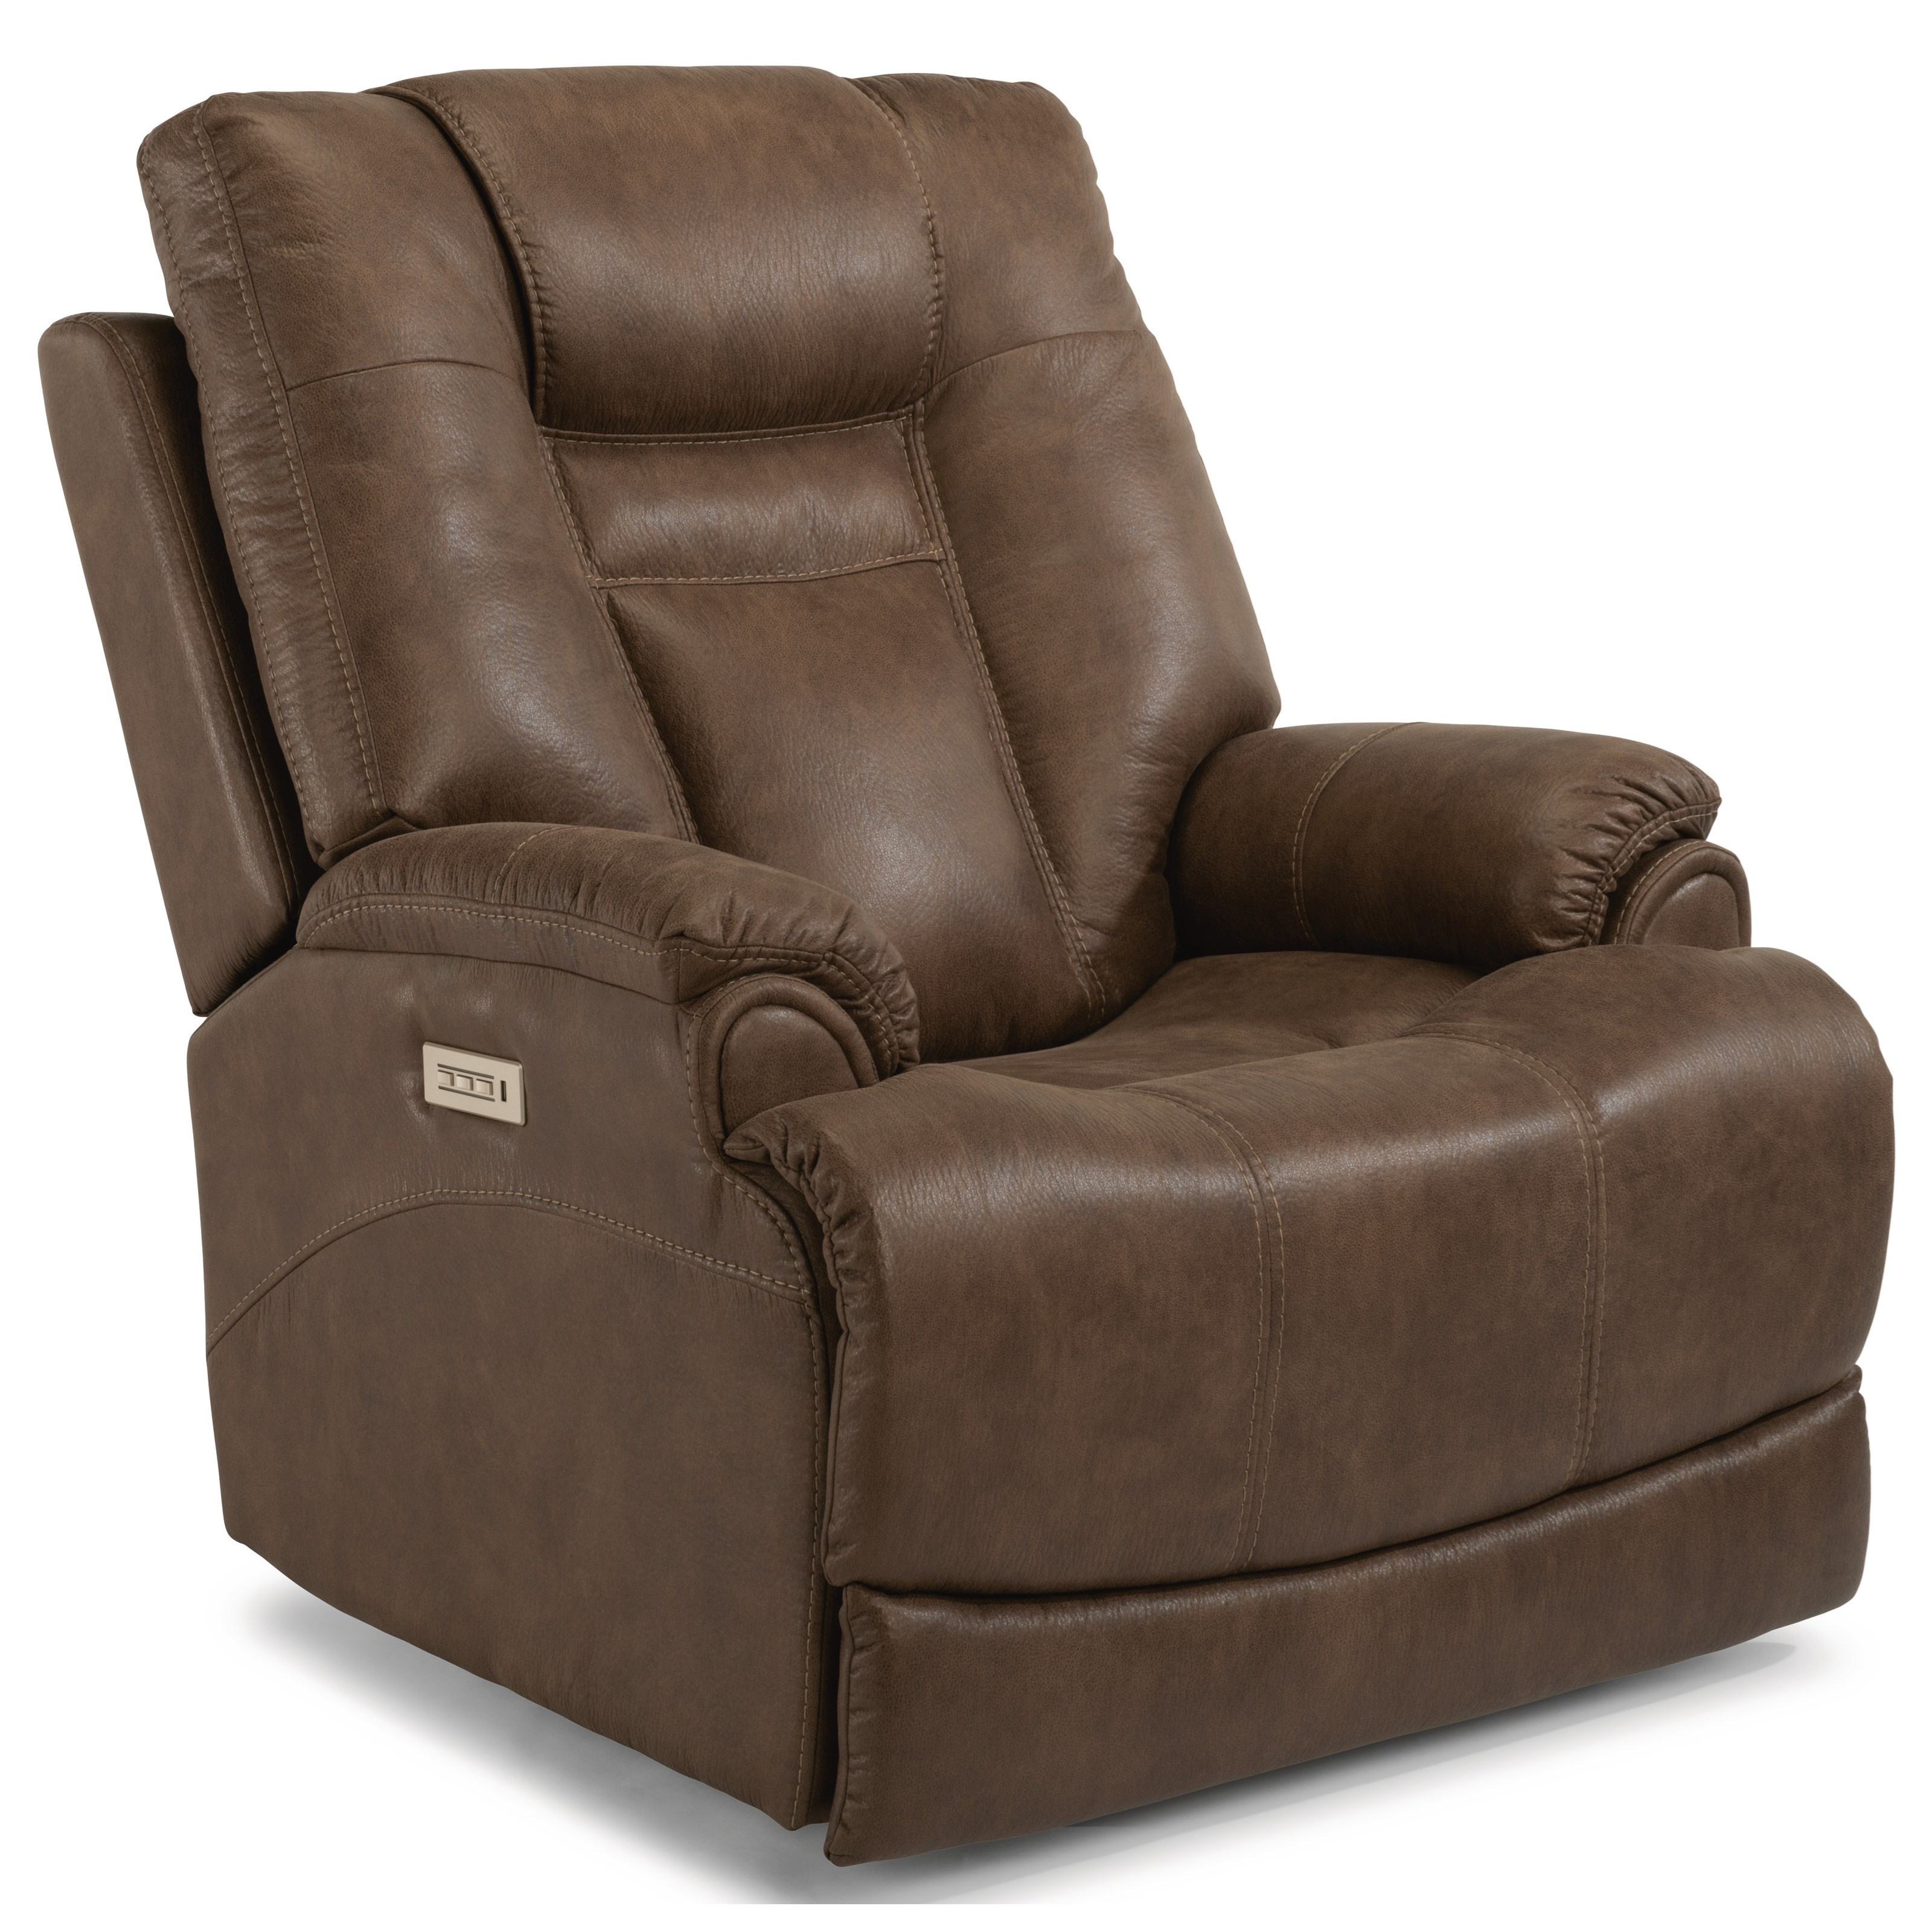 Marley Power Recliner with Power Headrest by Flexsteel at Suburban Furniture